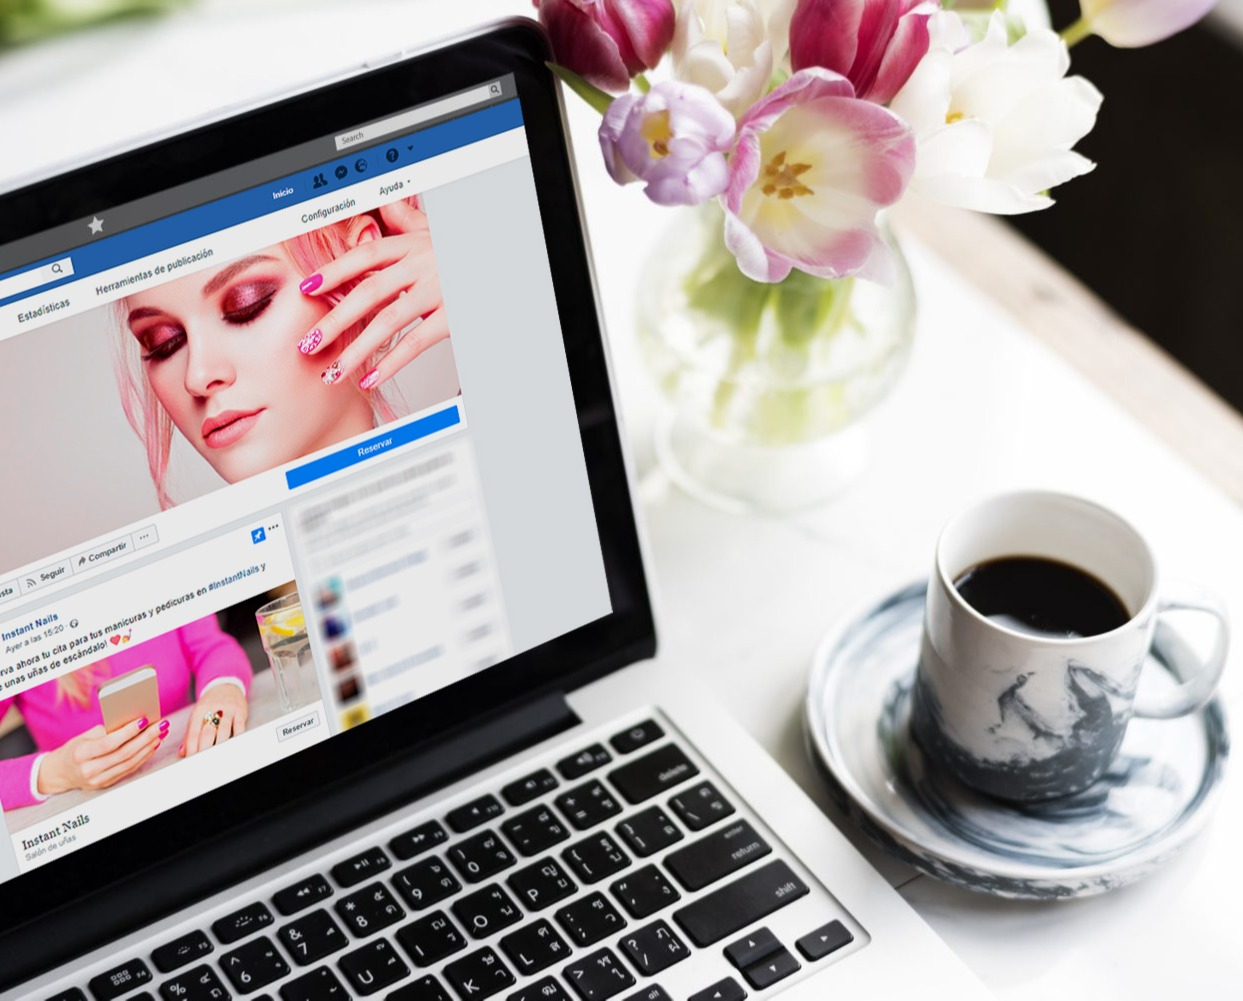 management and marketing software for beauty clinics - management for clinics - online agenda